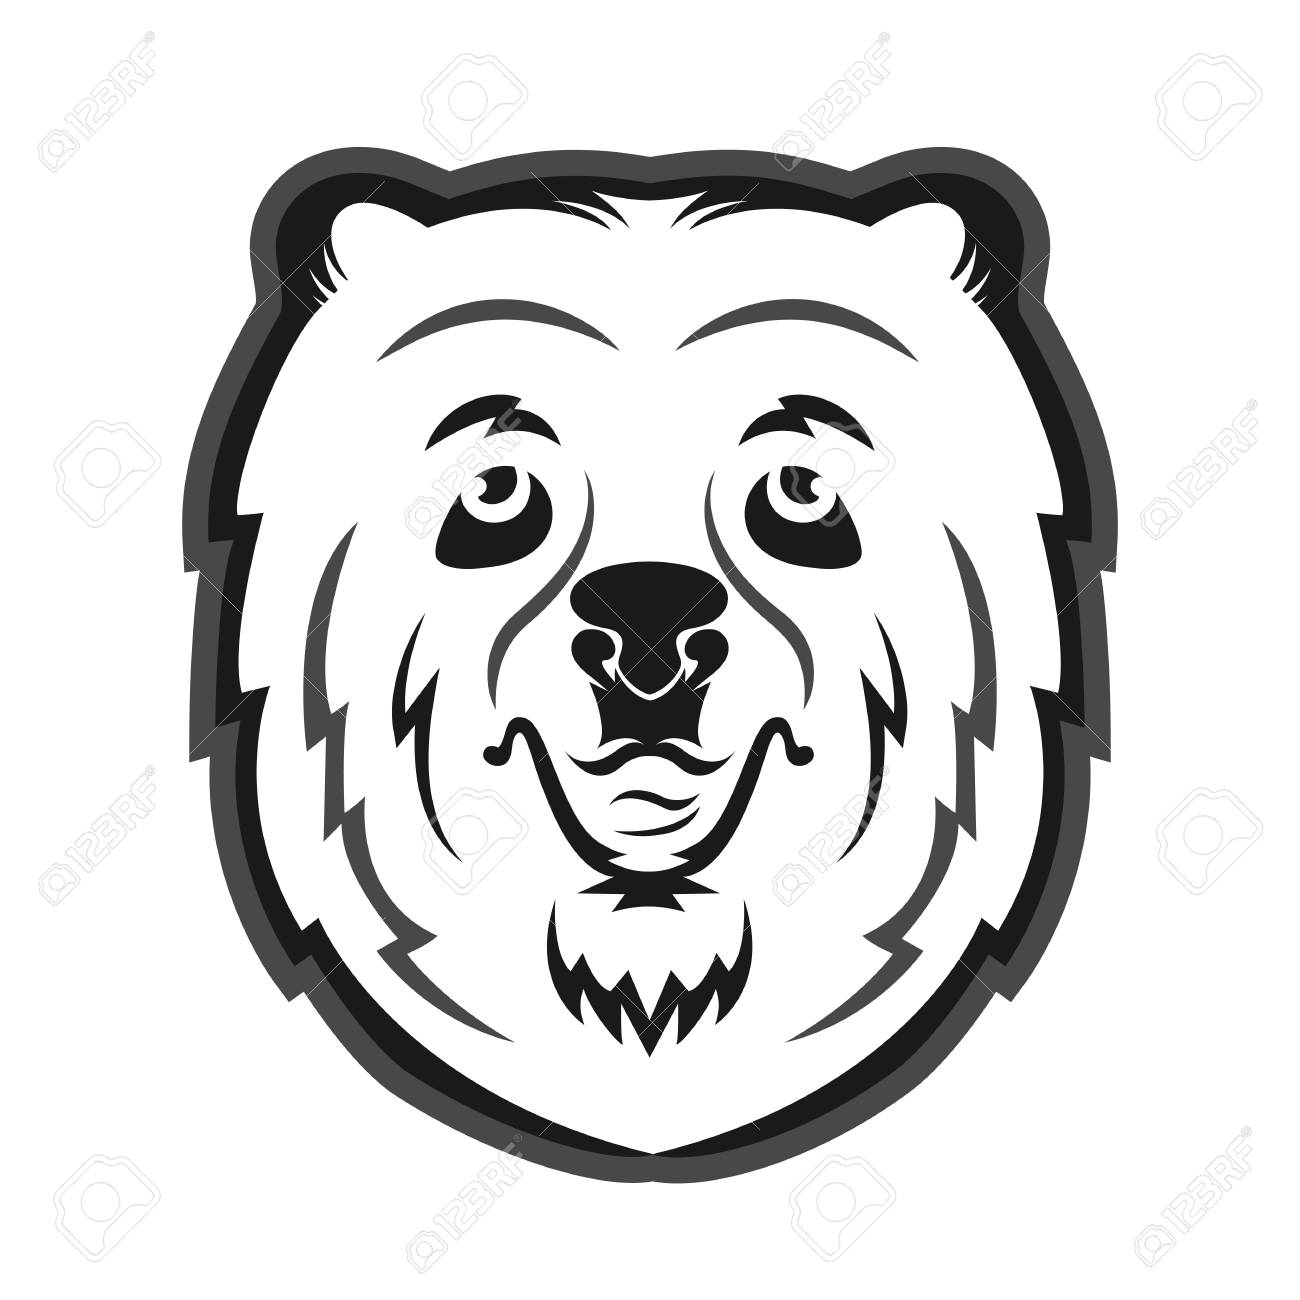 hight resolution of bear mascot for the sports team print on t shirt stock vector 82112812